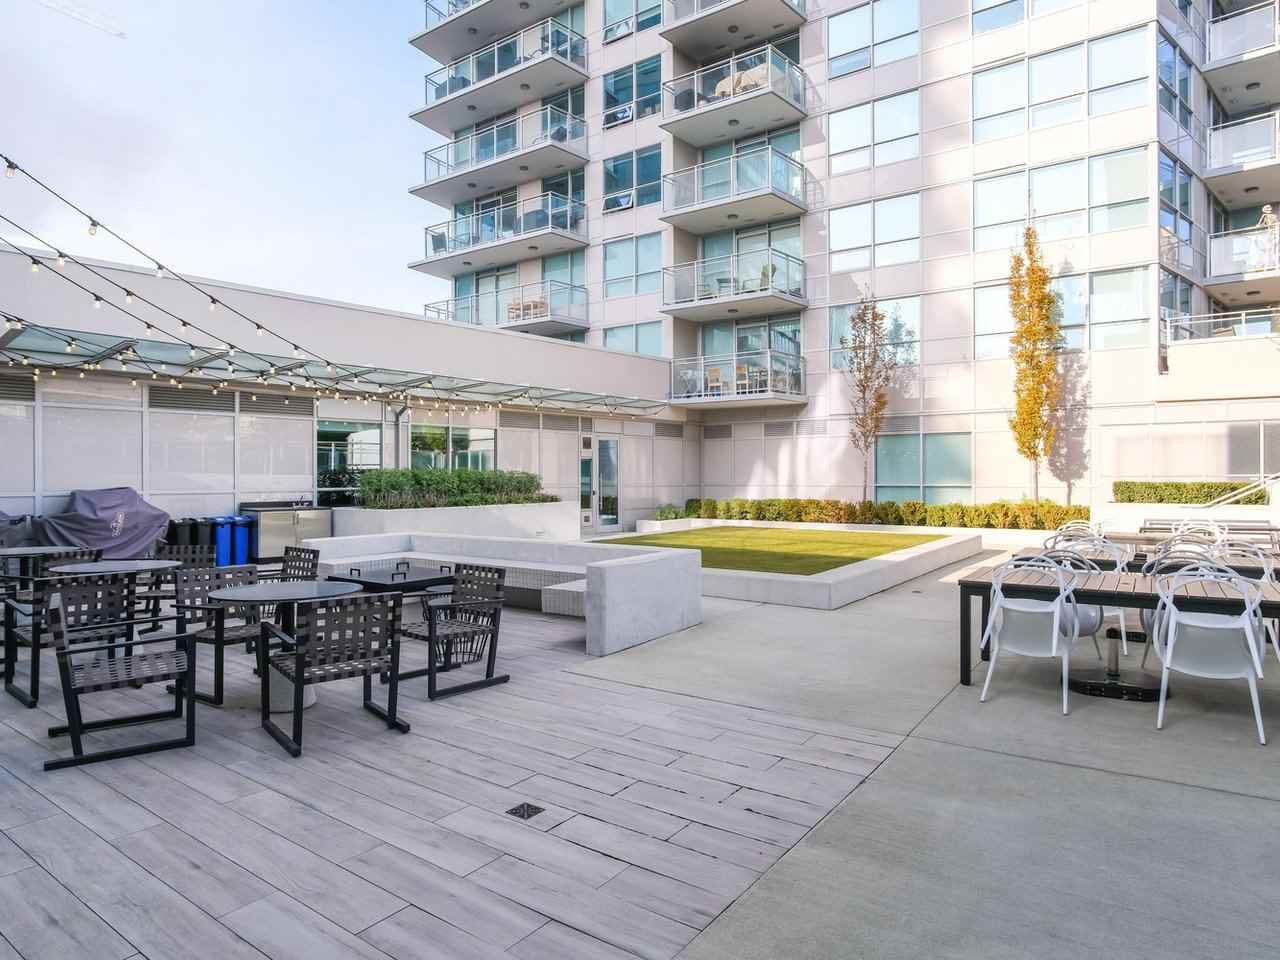 1002 112 E 13TH STREET - Central Lonsdale Apartment/Condo for sale, 2 Bedrooms (R2404786) - #17